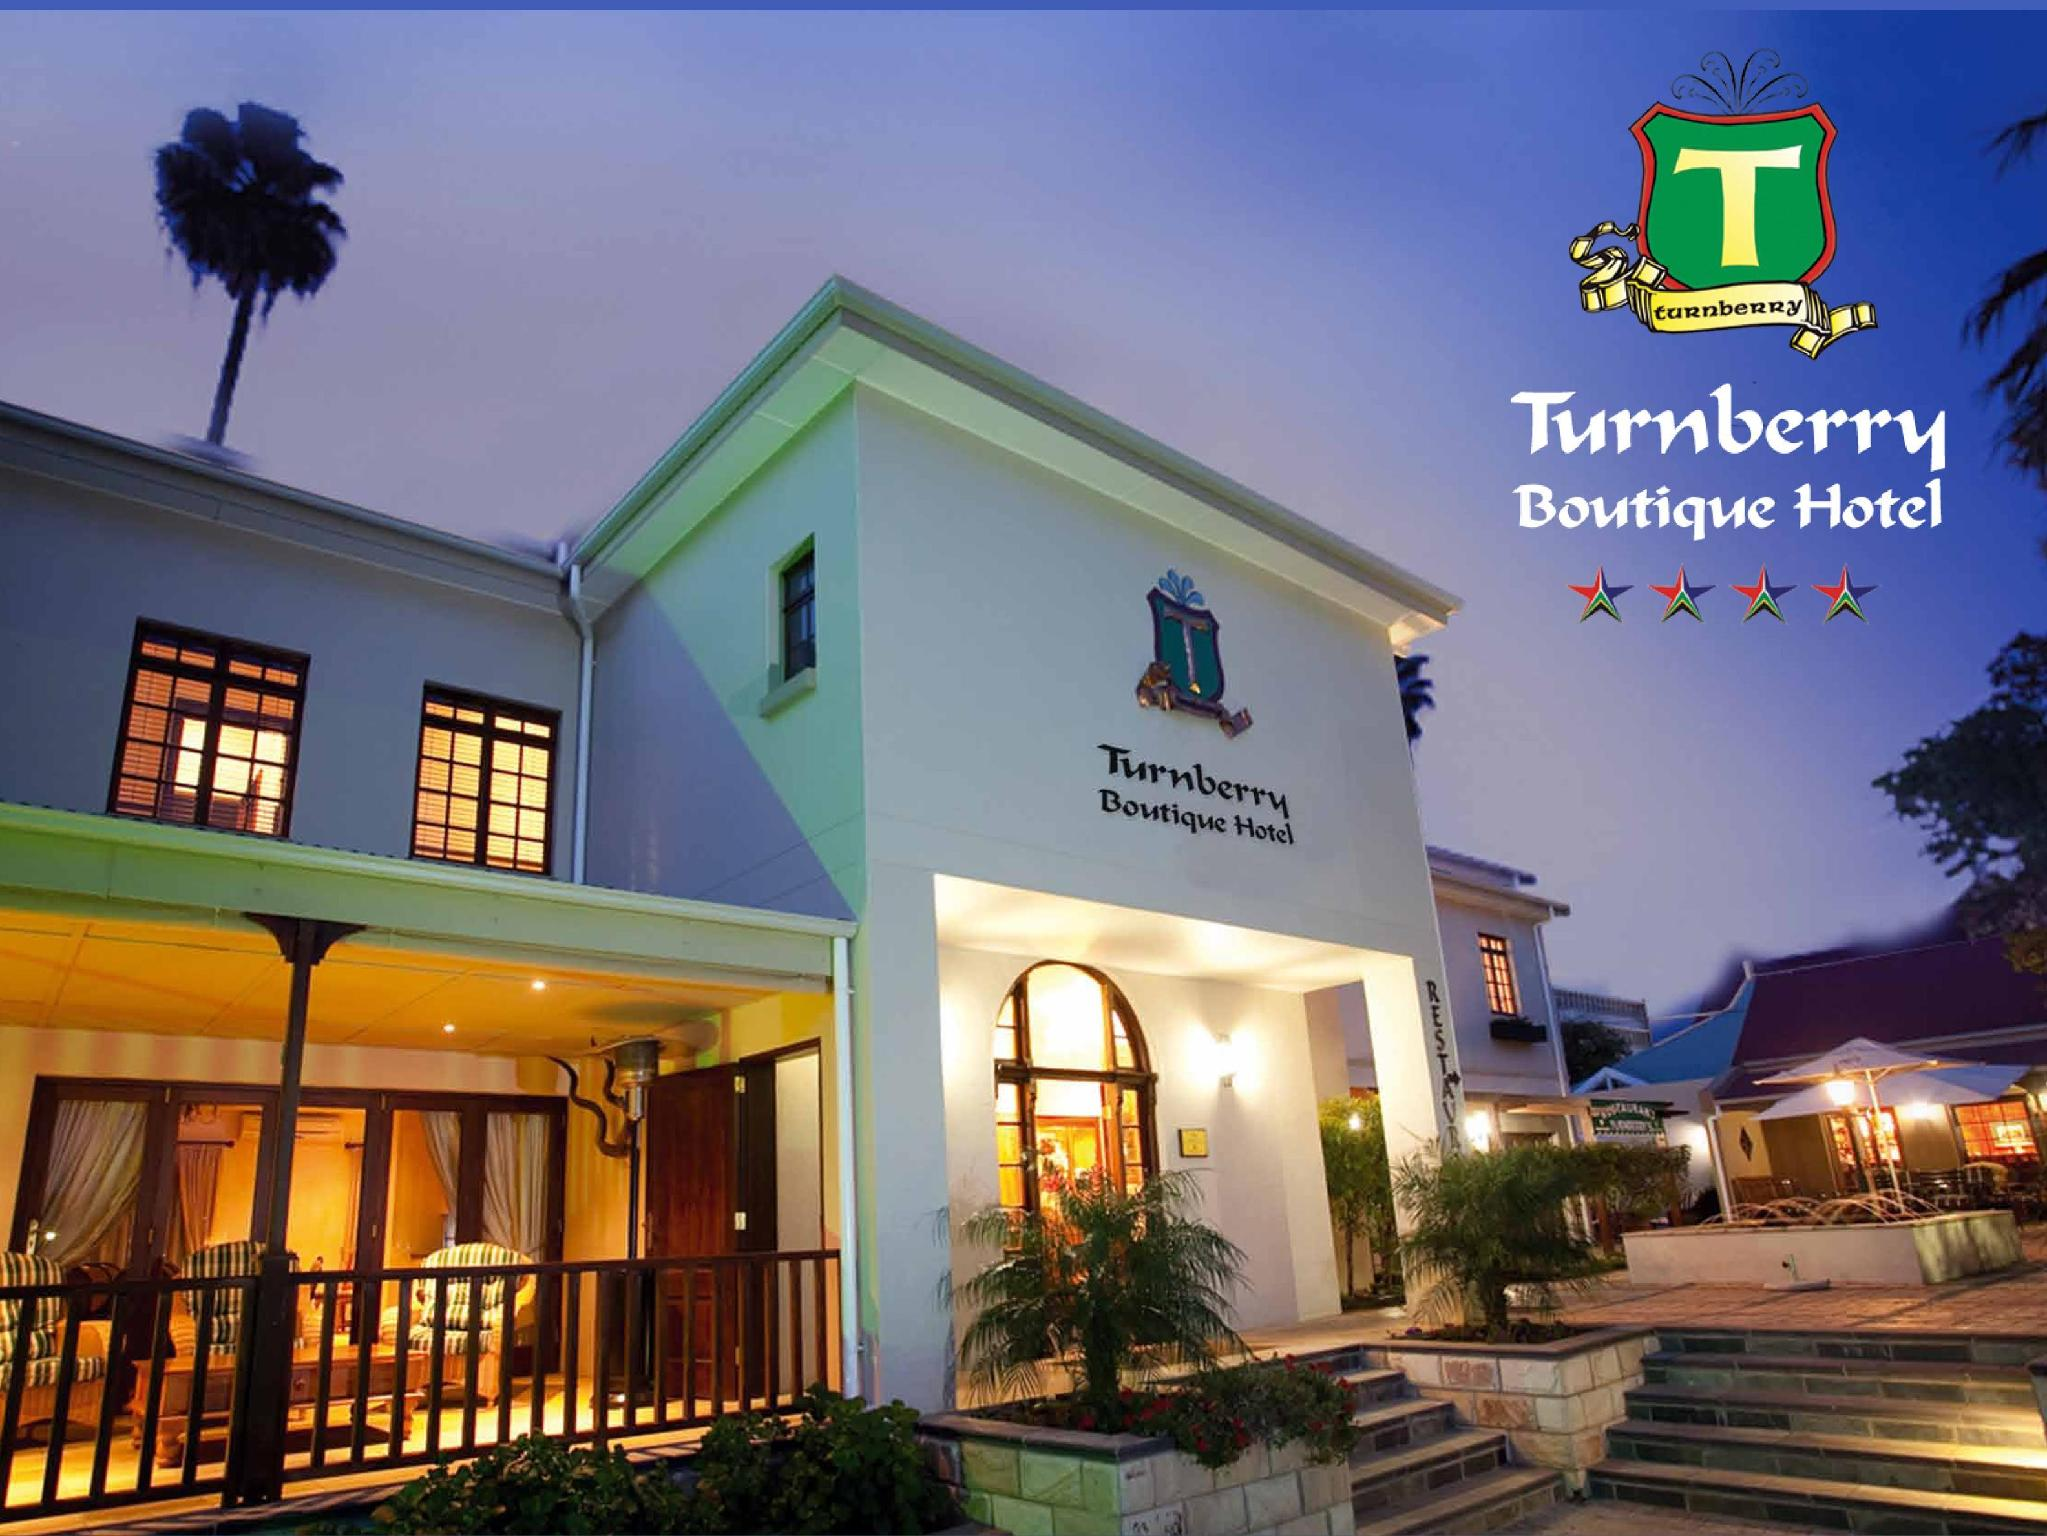 Turnberry boutique hotel oudtshoorn south africa for Boutique nice hotels